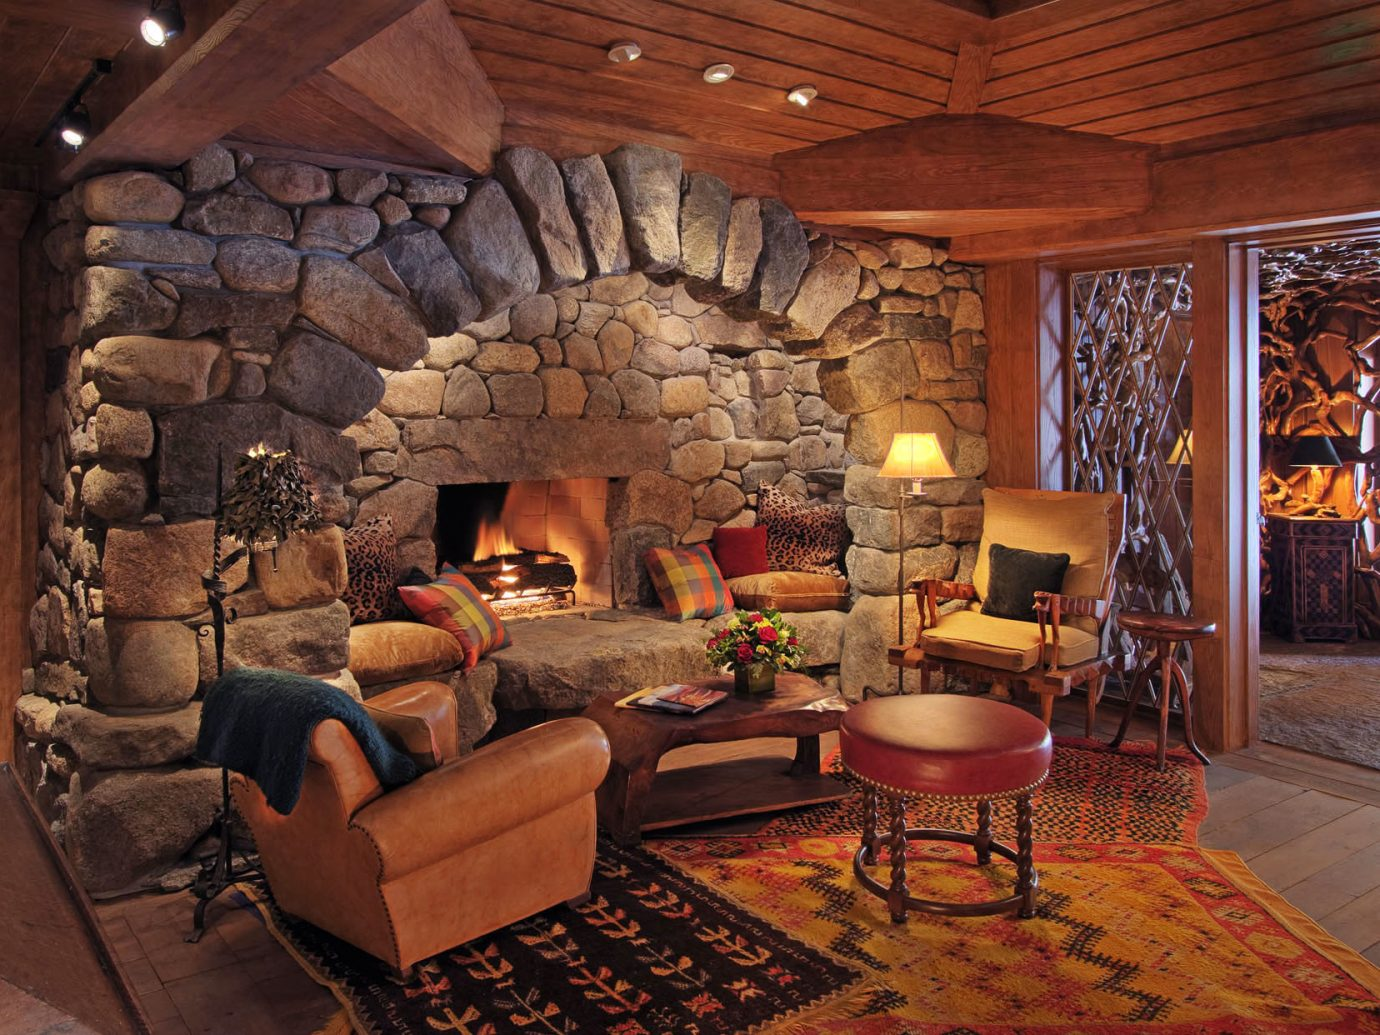 Boutique Hotels Fireplace Hotels Lodge Lounge Outdoors + Adventure Romance Rustic Trip Ideas Waterfront Weekend Getaways indoor floor Living room ceiling living room property furniture estate home cottage interior design hearth log cabin wood farmhouse area